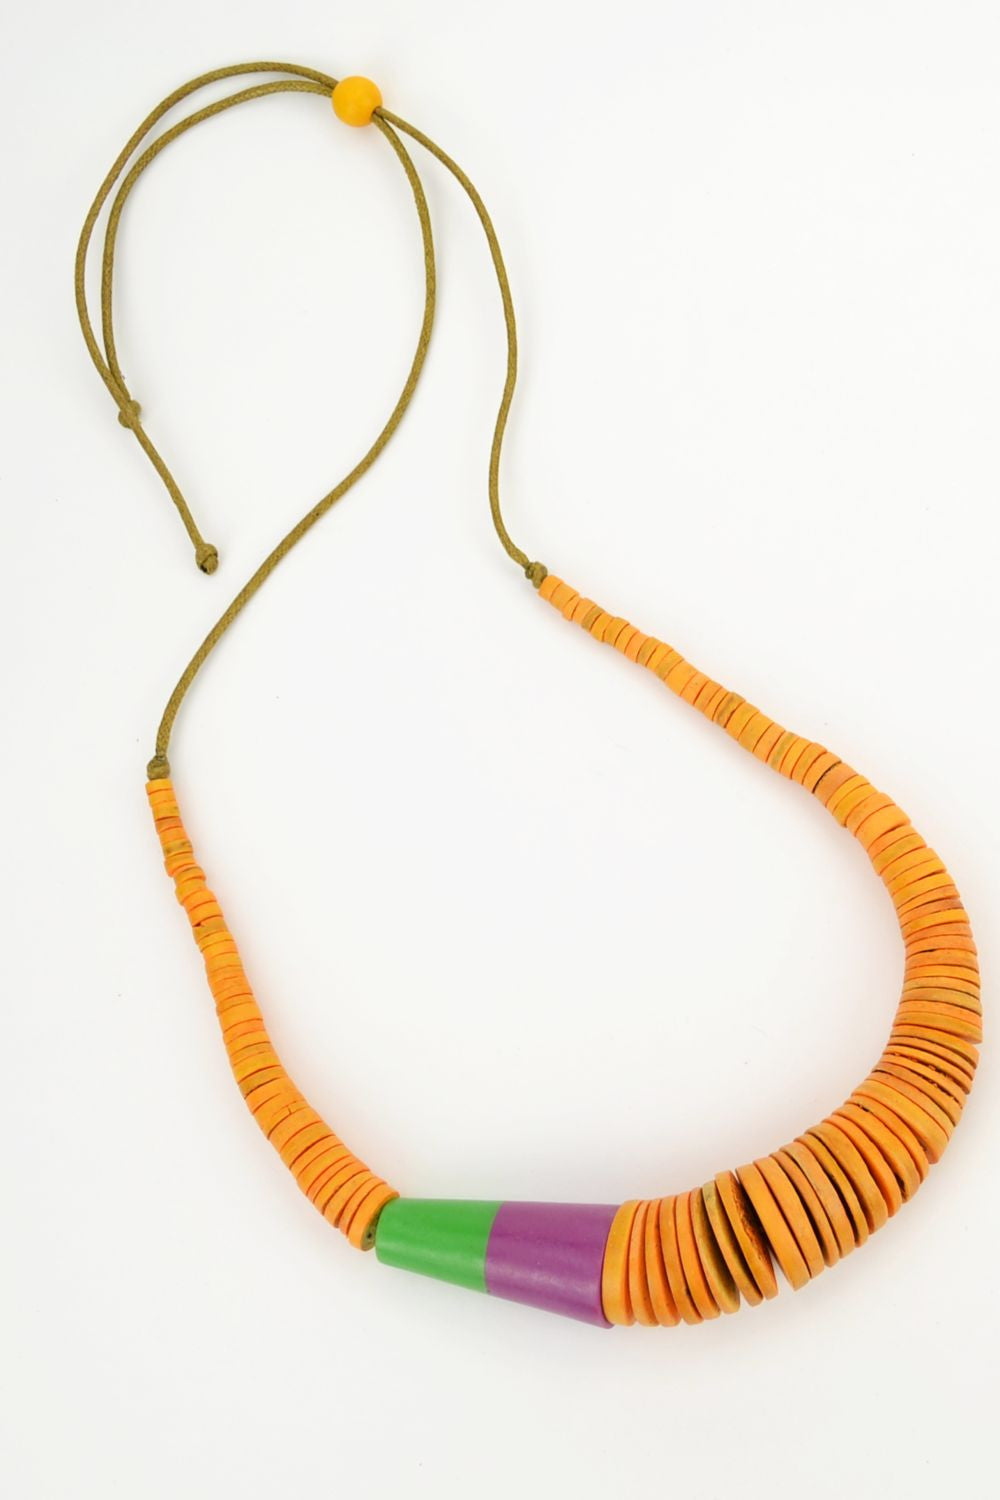 Orange Disks Necklace - at I Love Tunics @ www.ilovetunics.com = Number One! Tunics Destination